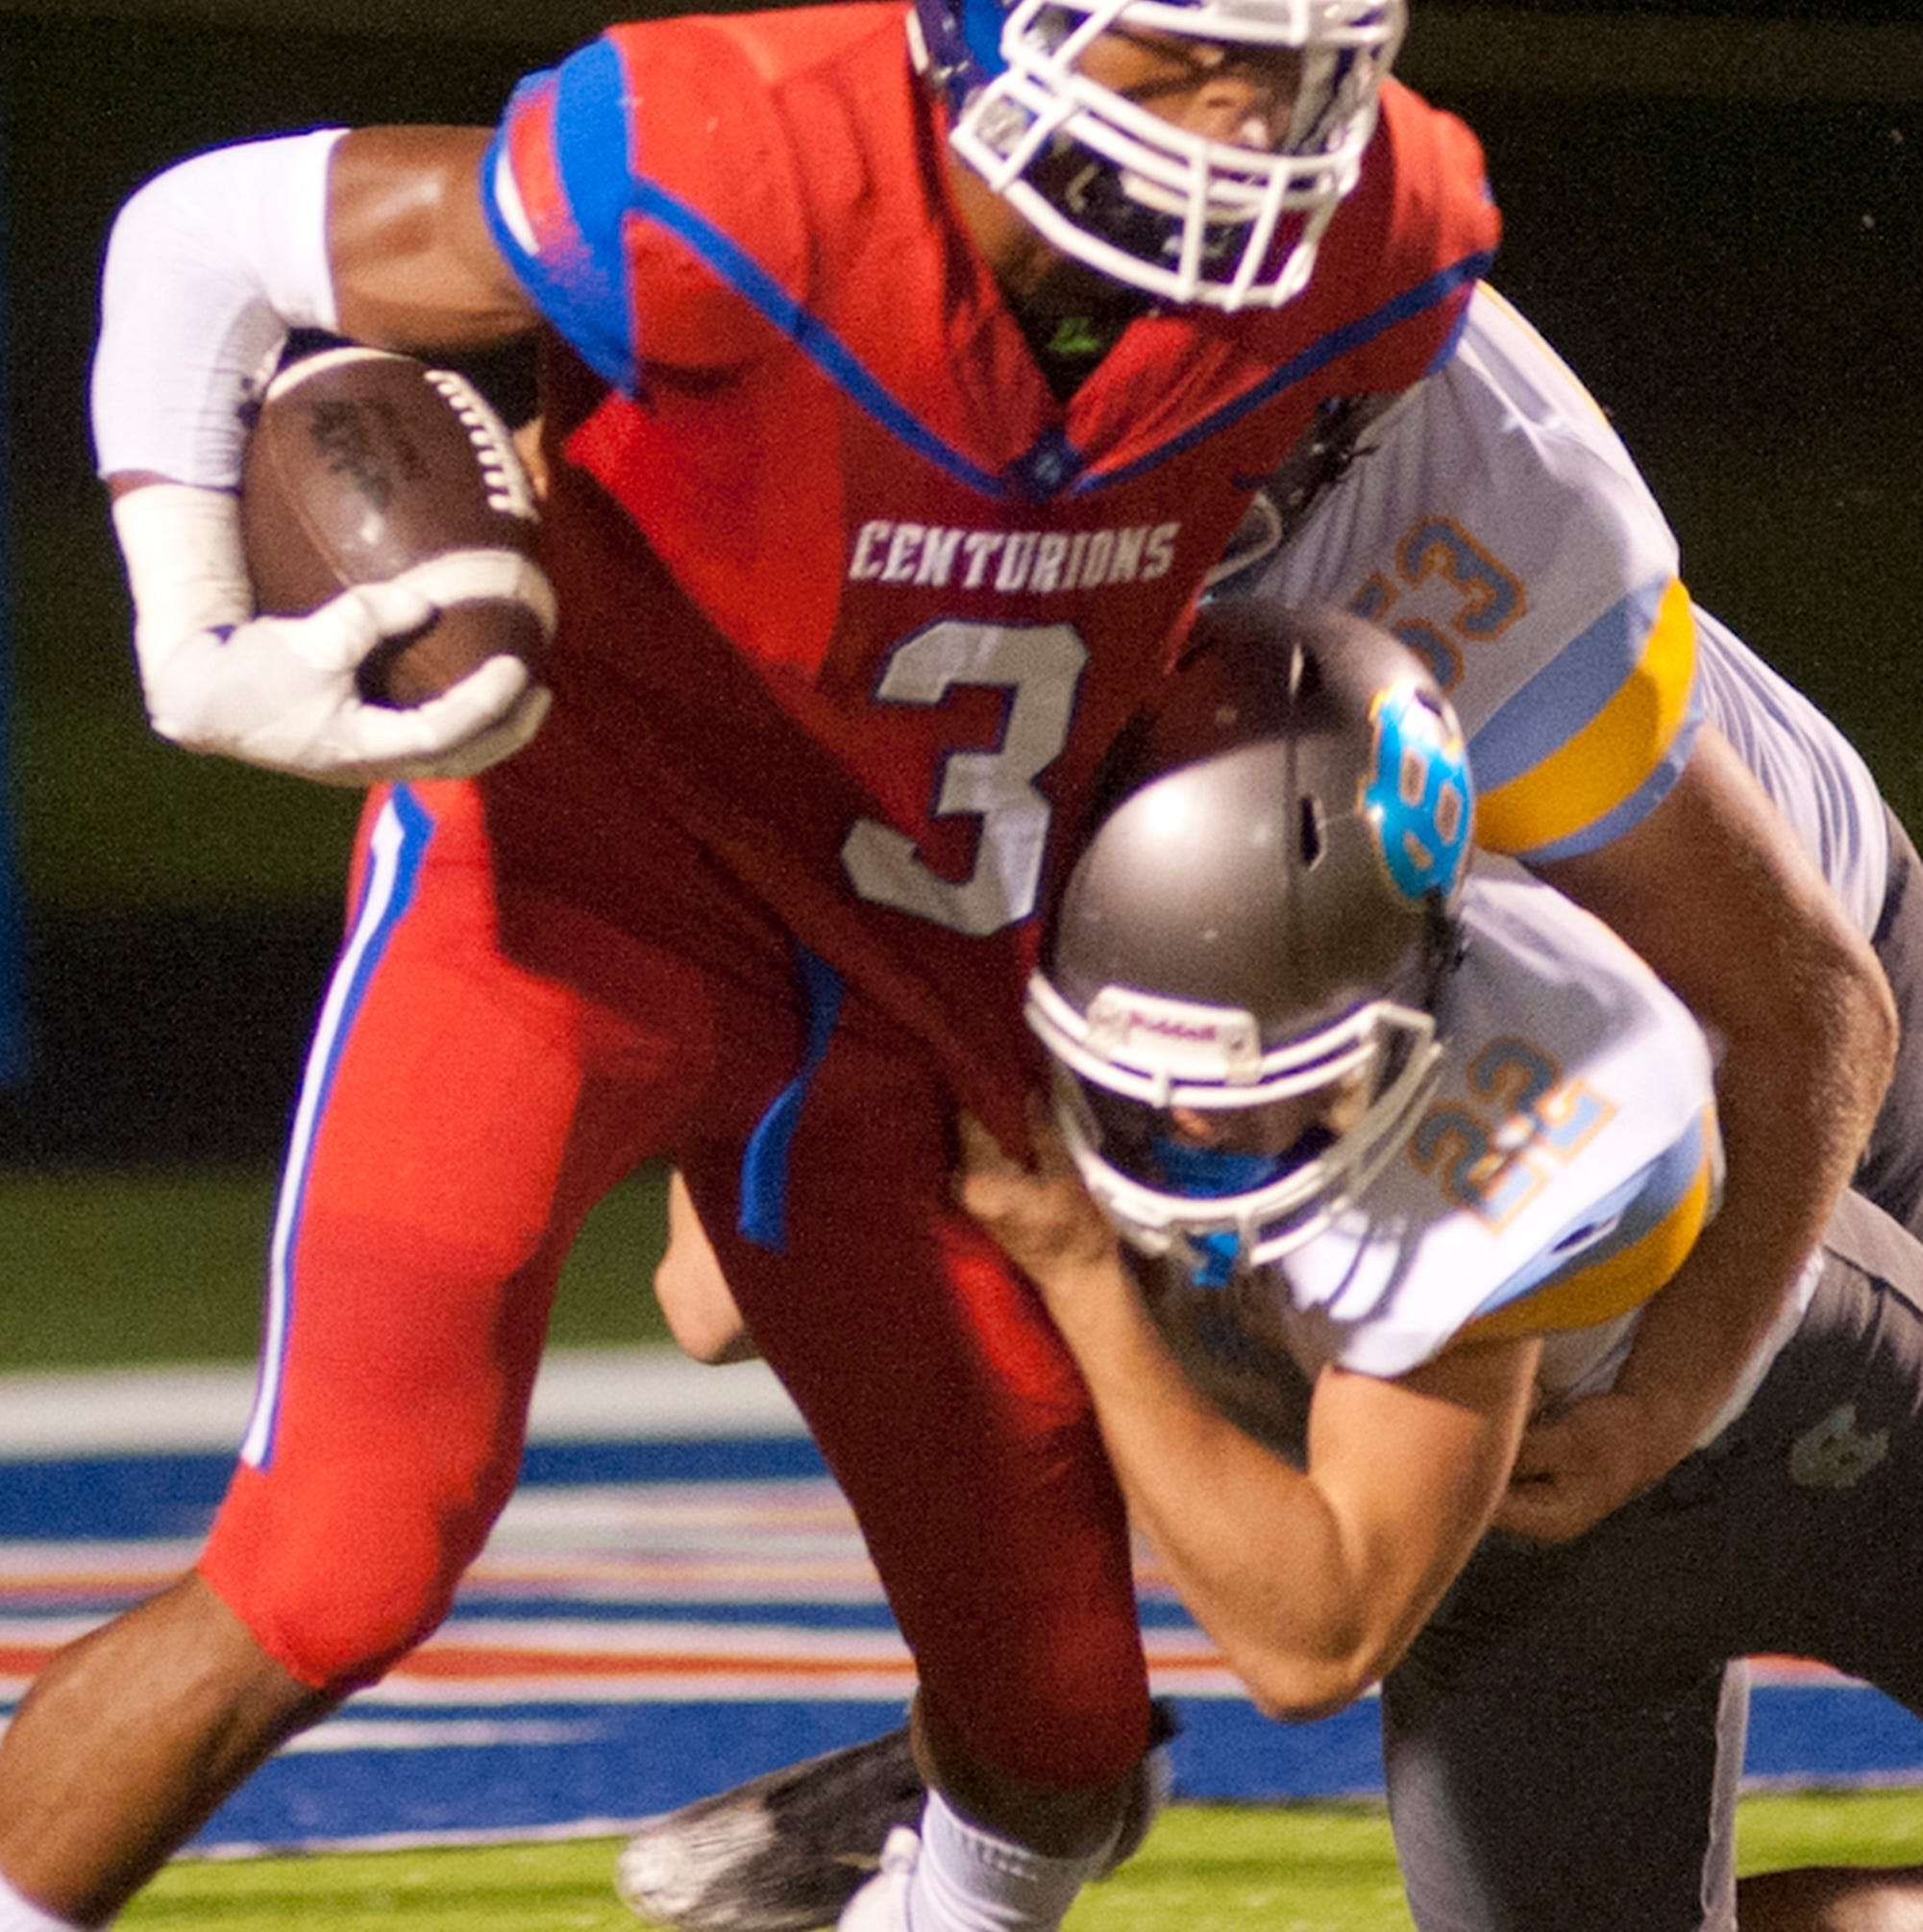 Christian Academy football star Milton Wright commits to Purdue